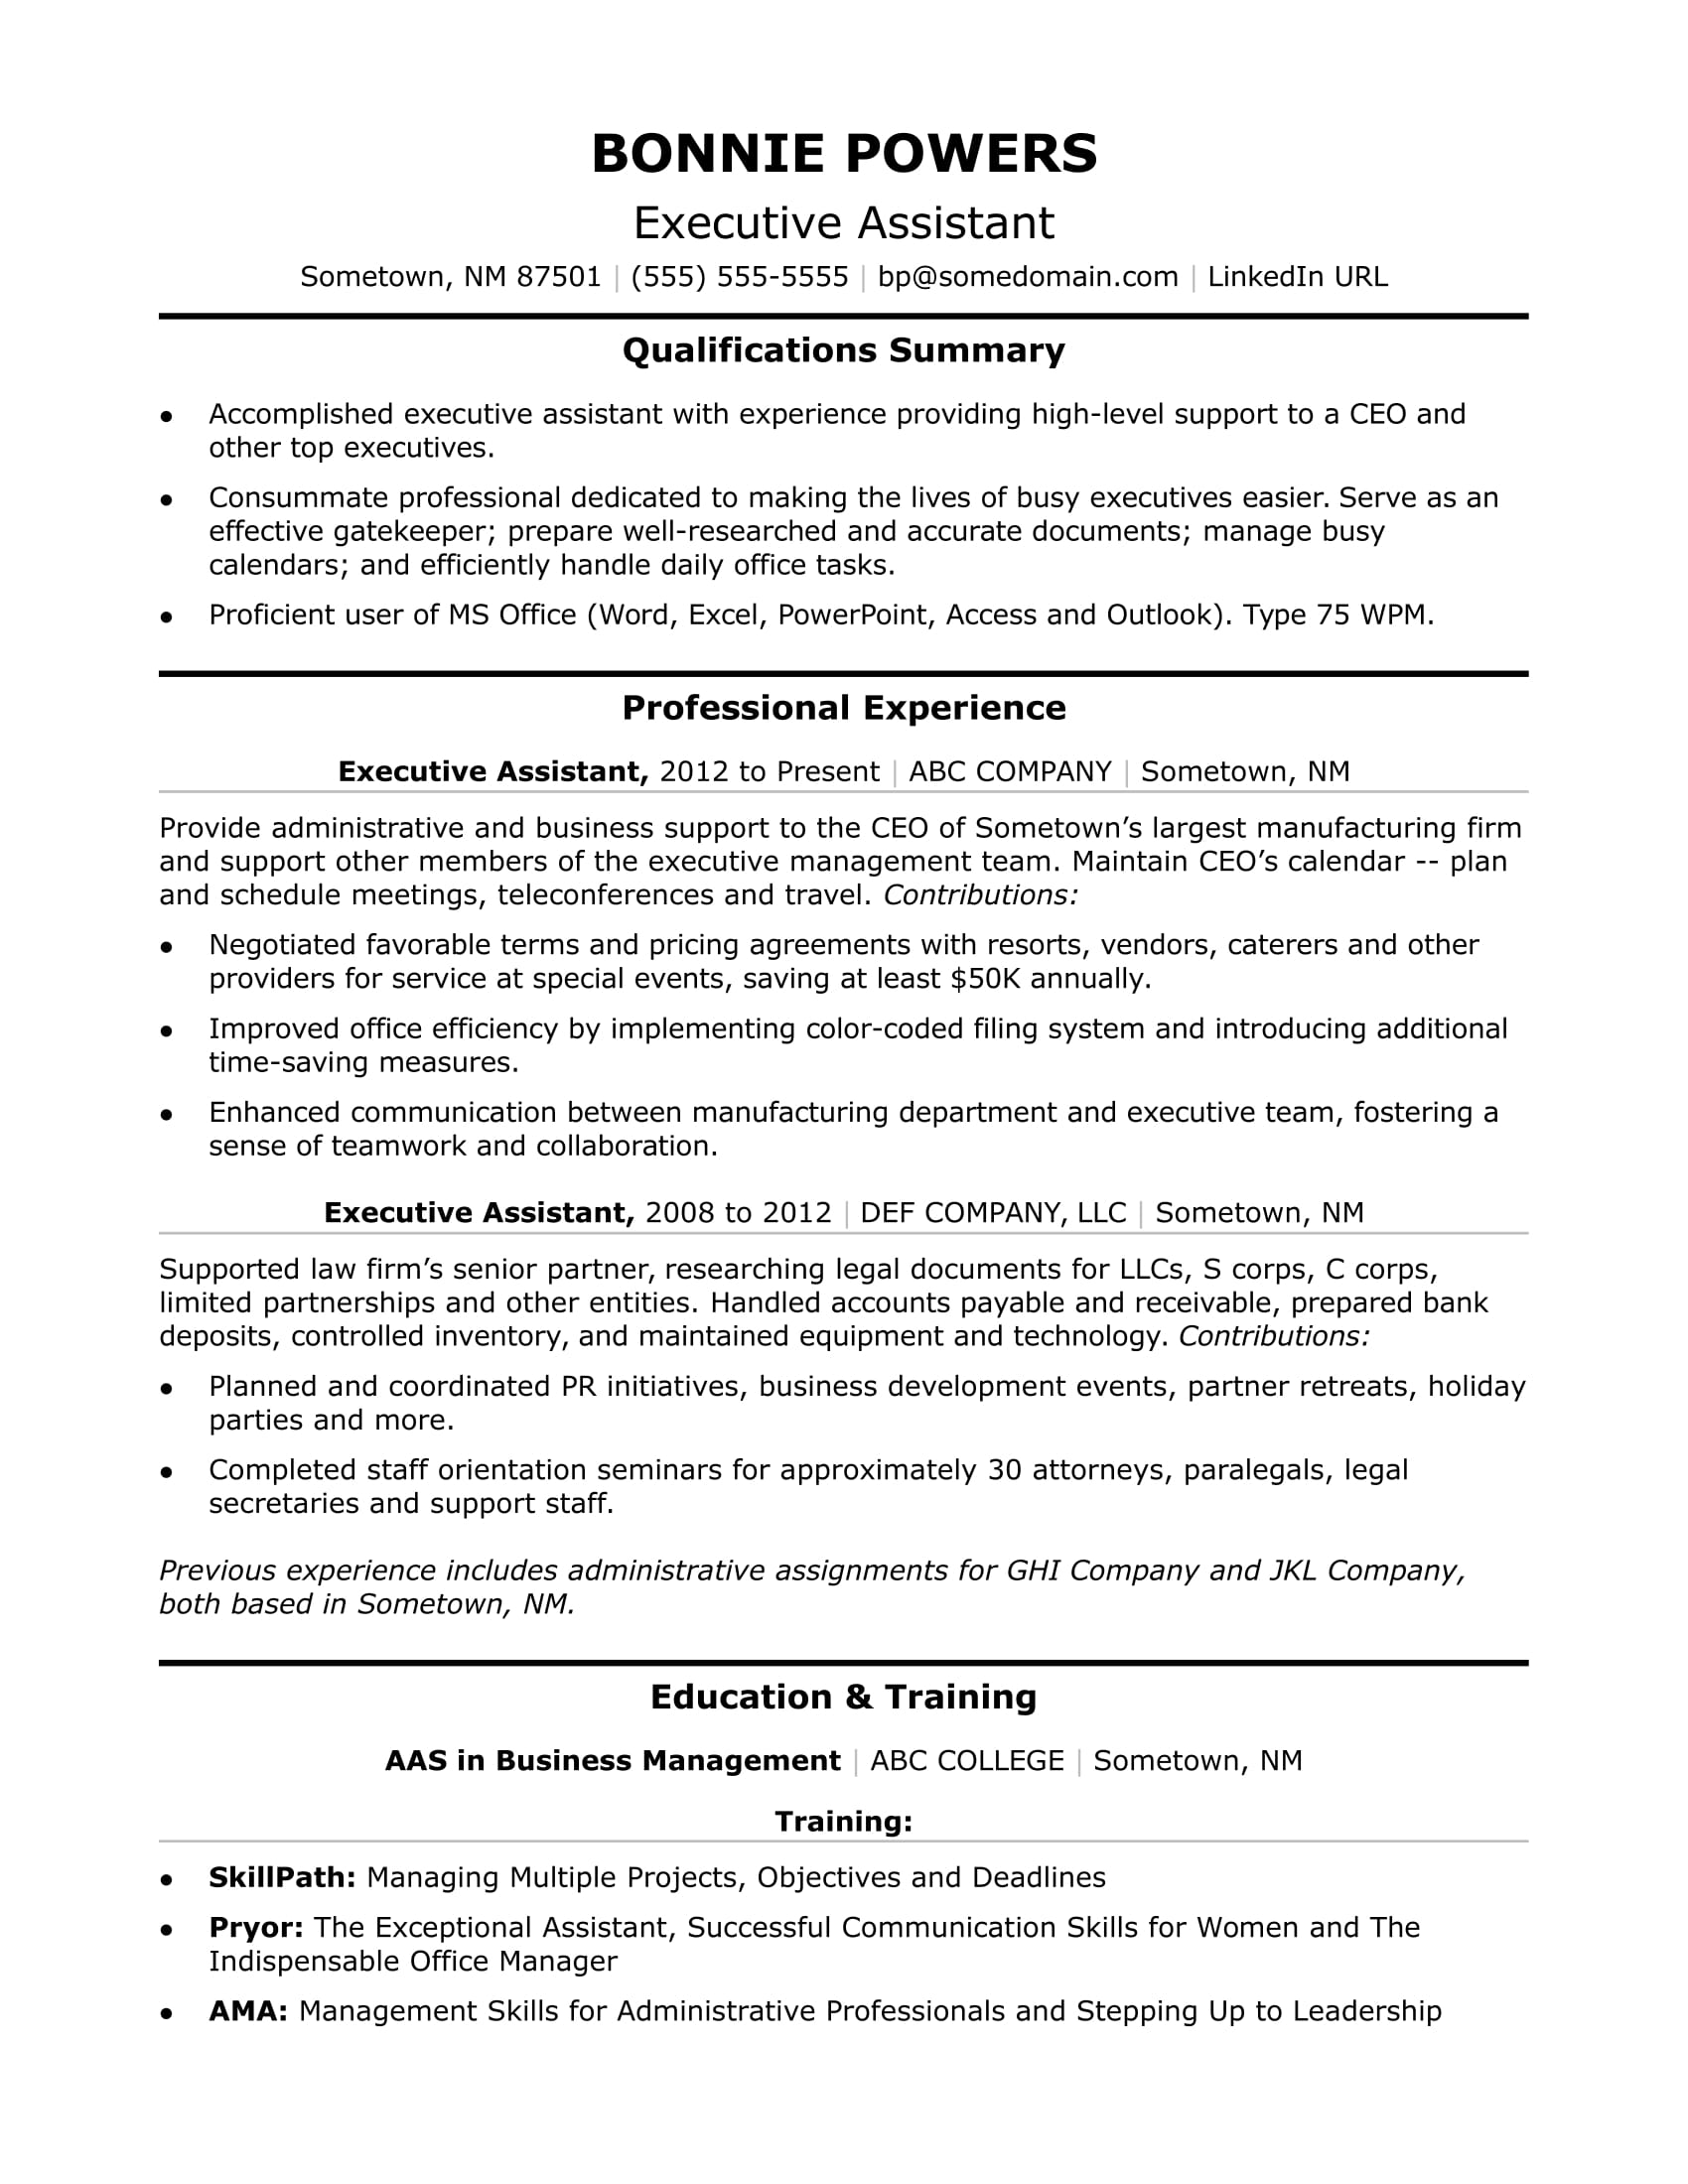 Exceptional Executive Administrative Assistant Resume Sample Inside Executive Assistant Resume Samples